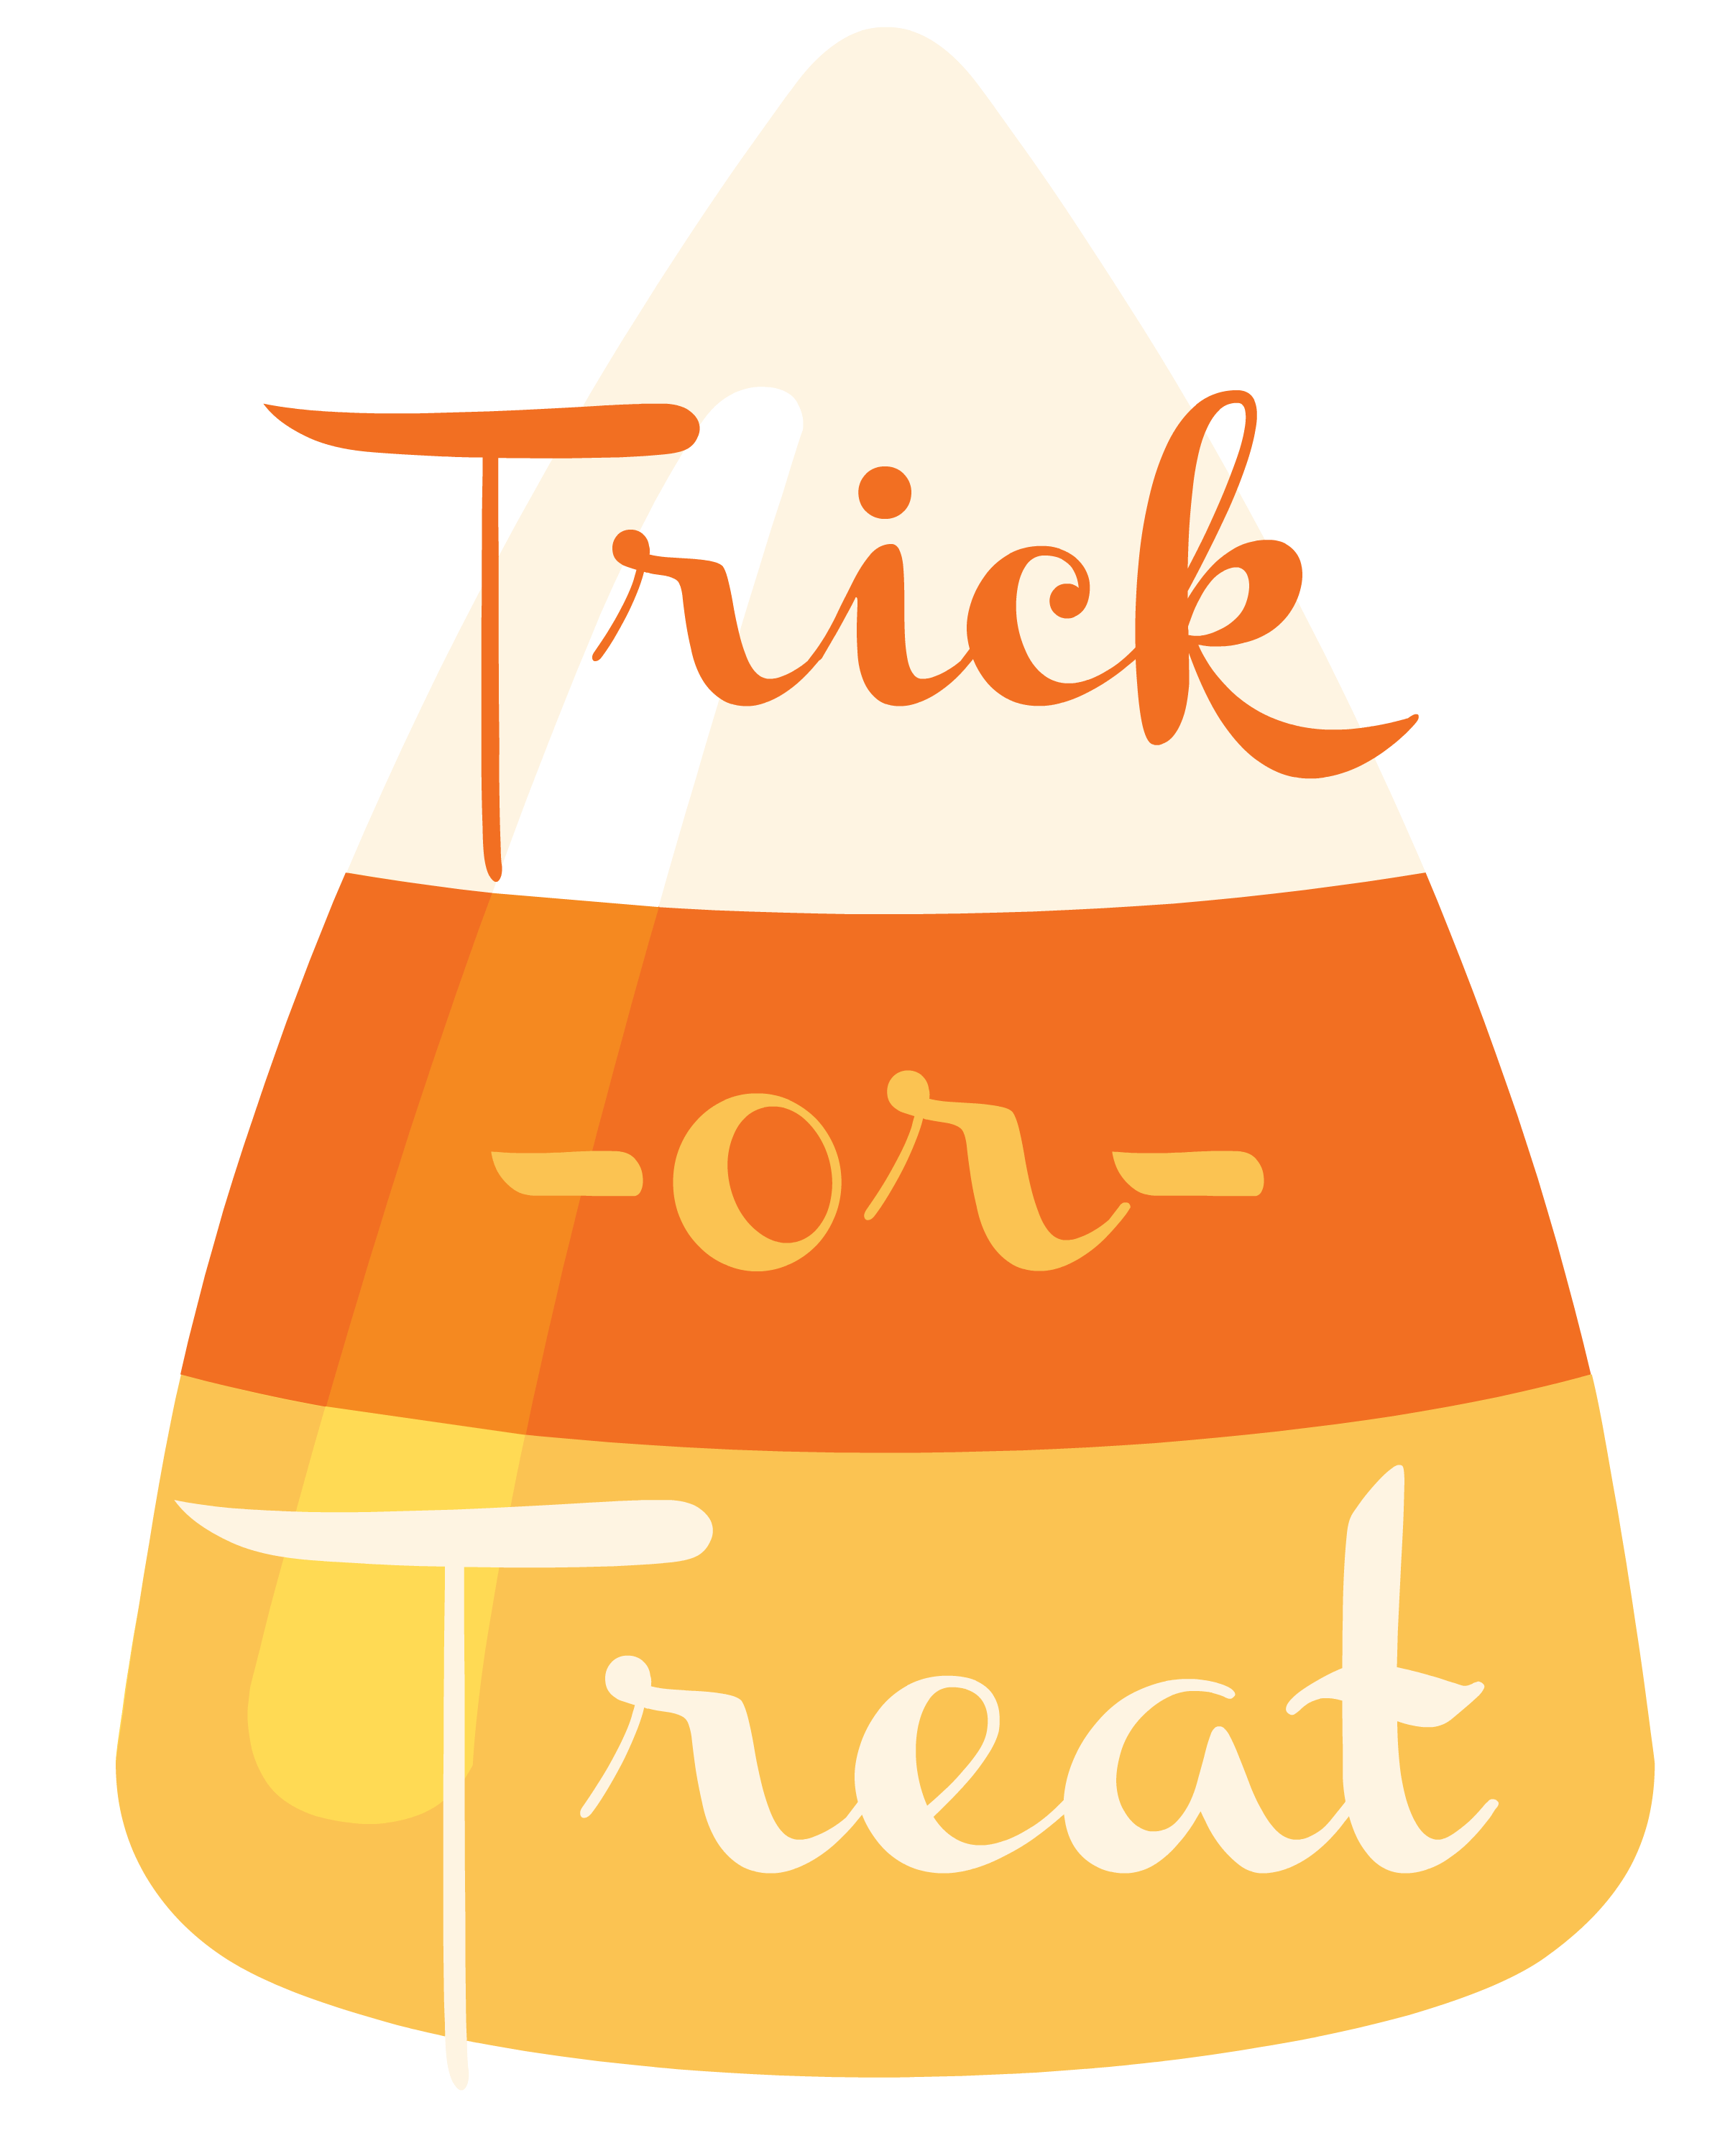 Halloween yoda pumpkin clipart svg royalty free library Halloween Signs | The Craft Crib svg royalty free library